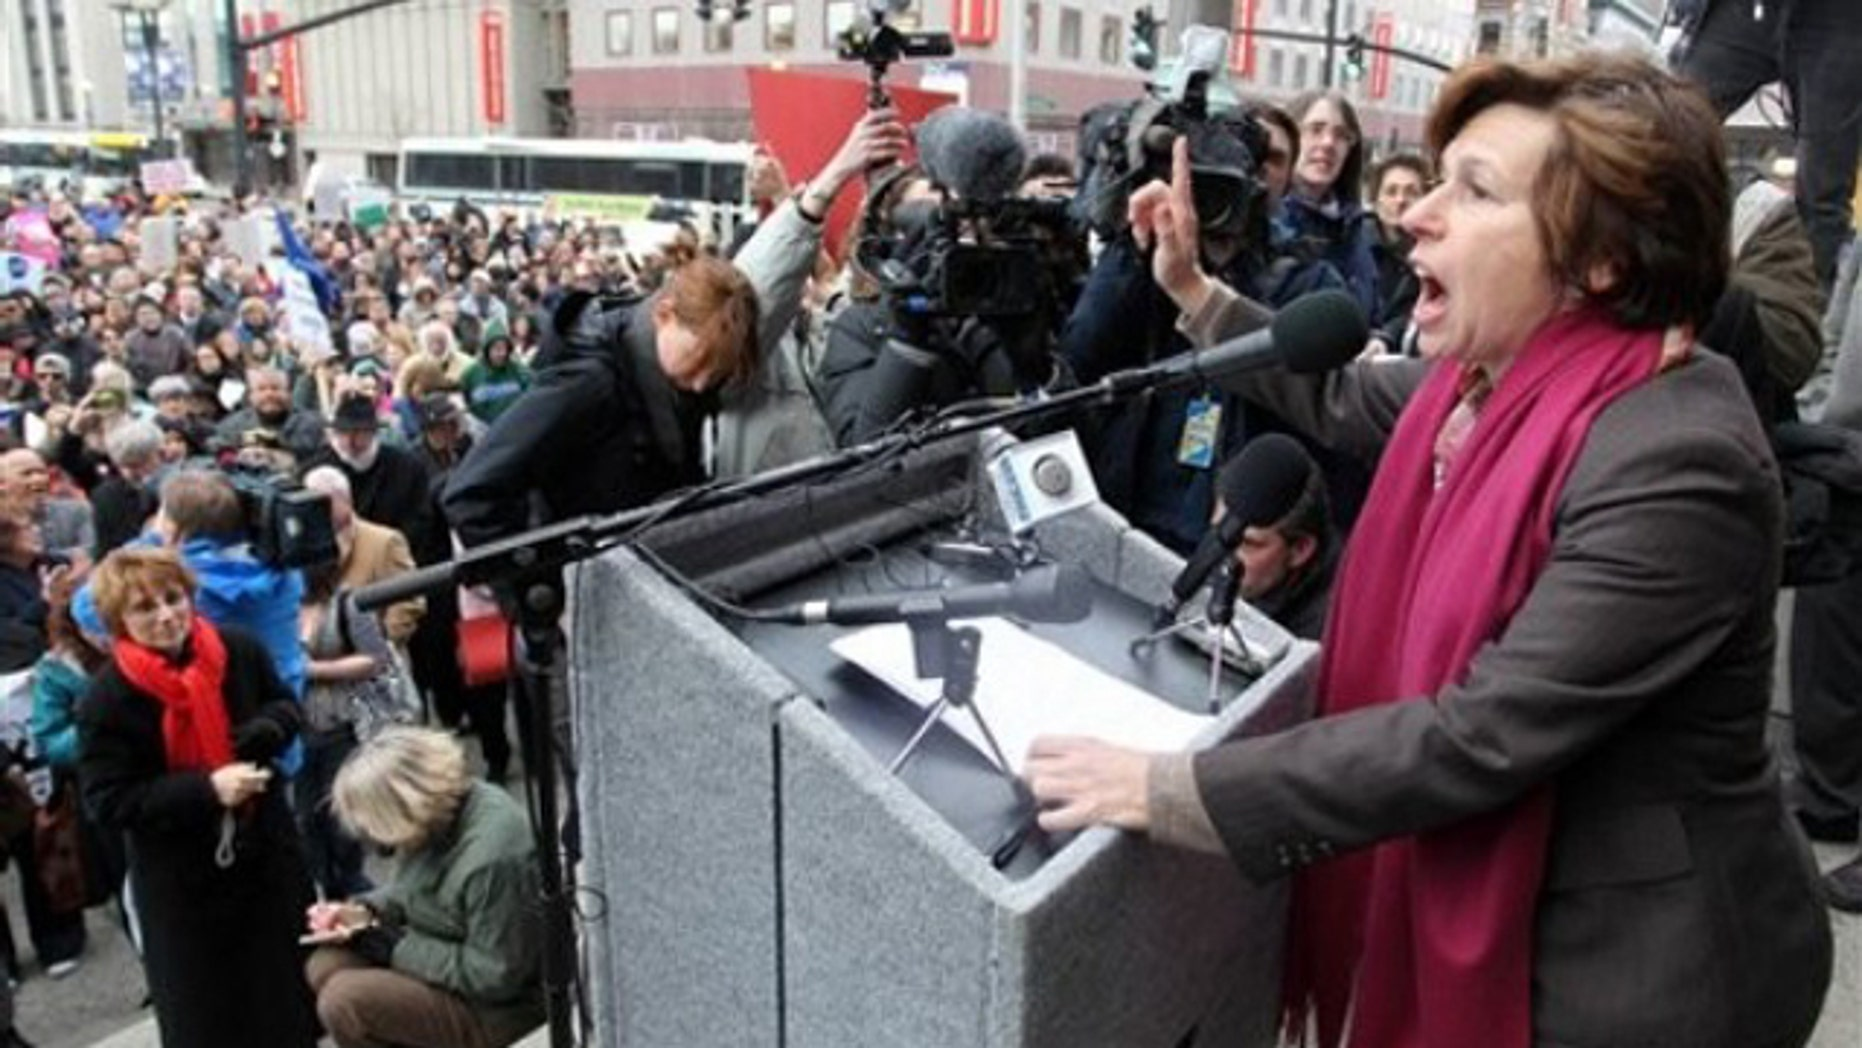 Randi Weingarten, right, president of the American Federation of Teachers, speaks to a crowd on the steps of Providence, R.I., City Hall March 2.